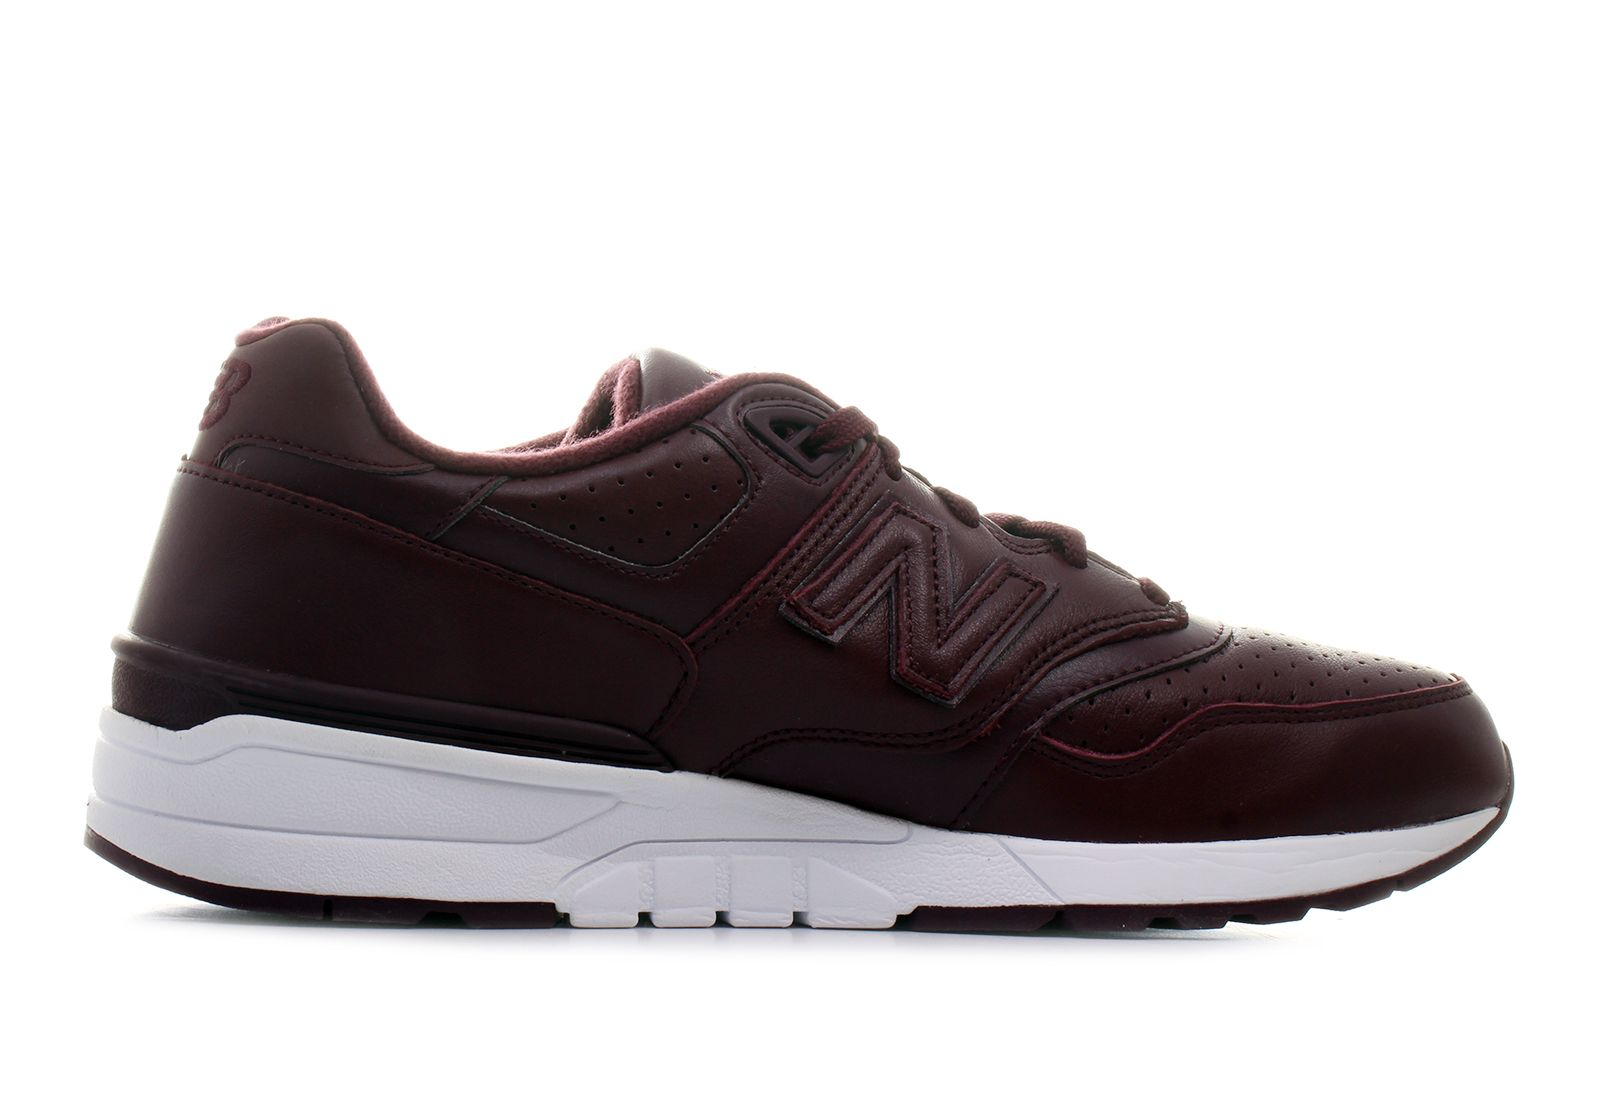 Coupons > Shoes > New Balance Coupons. Groupon Bucks Earned: Sign Up. Shop tvjerjuyxbdmp.ga Coupons Available. 3 Verified Coupons Filter by. All Coupons (23) Promo Codes (5) Sales (18) In-Store Offers (0) Come to New Balance to shop all the TCS New York City Marathon Event Gear.